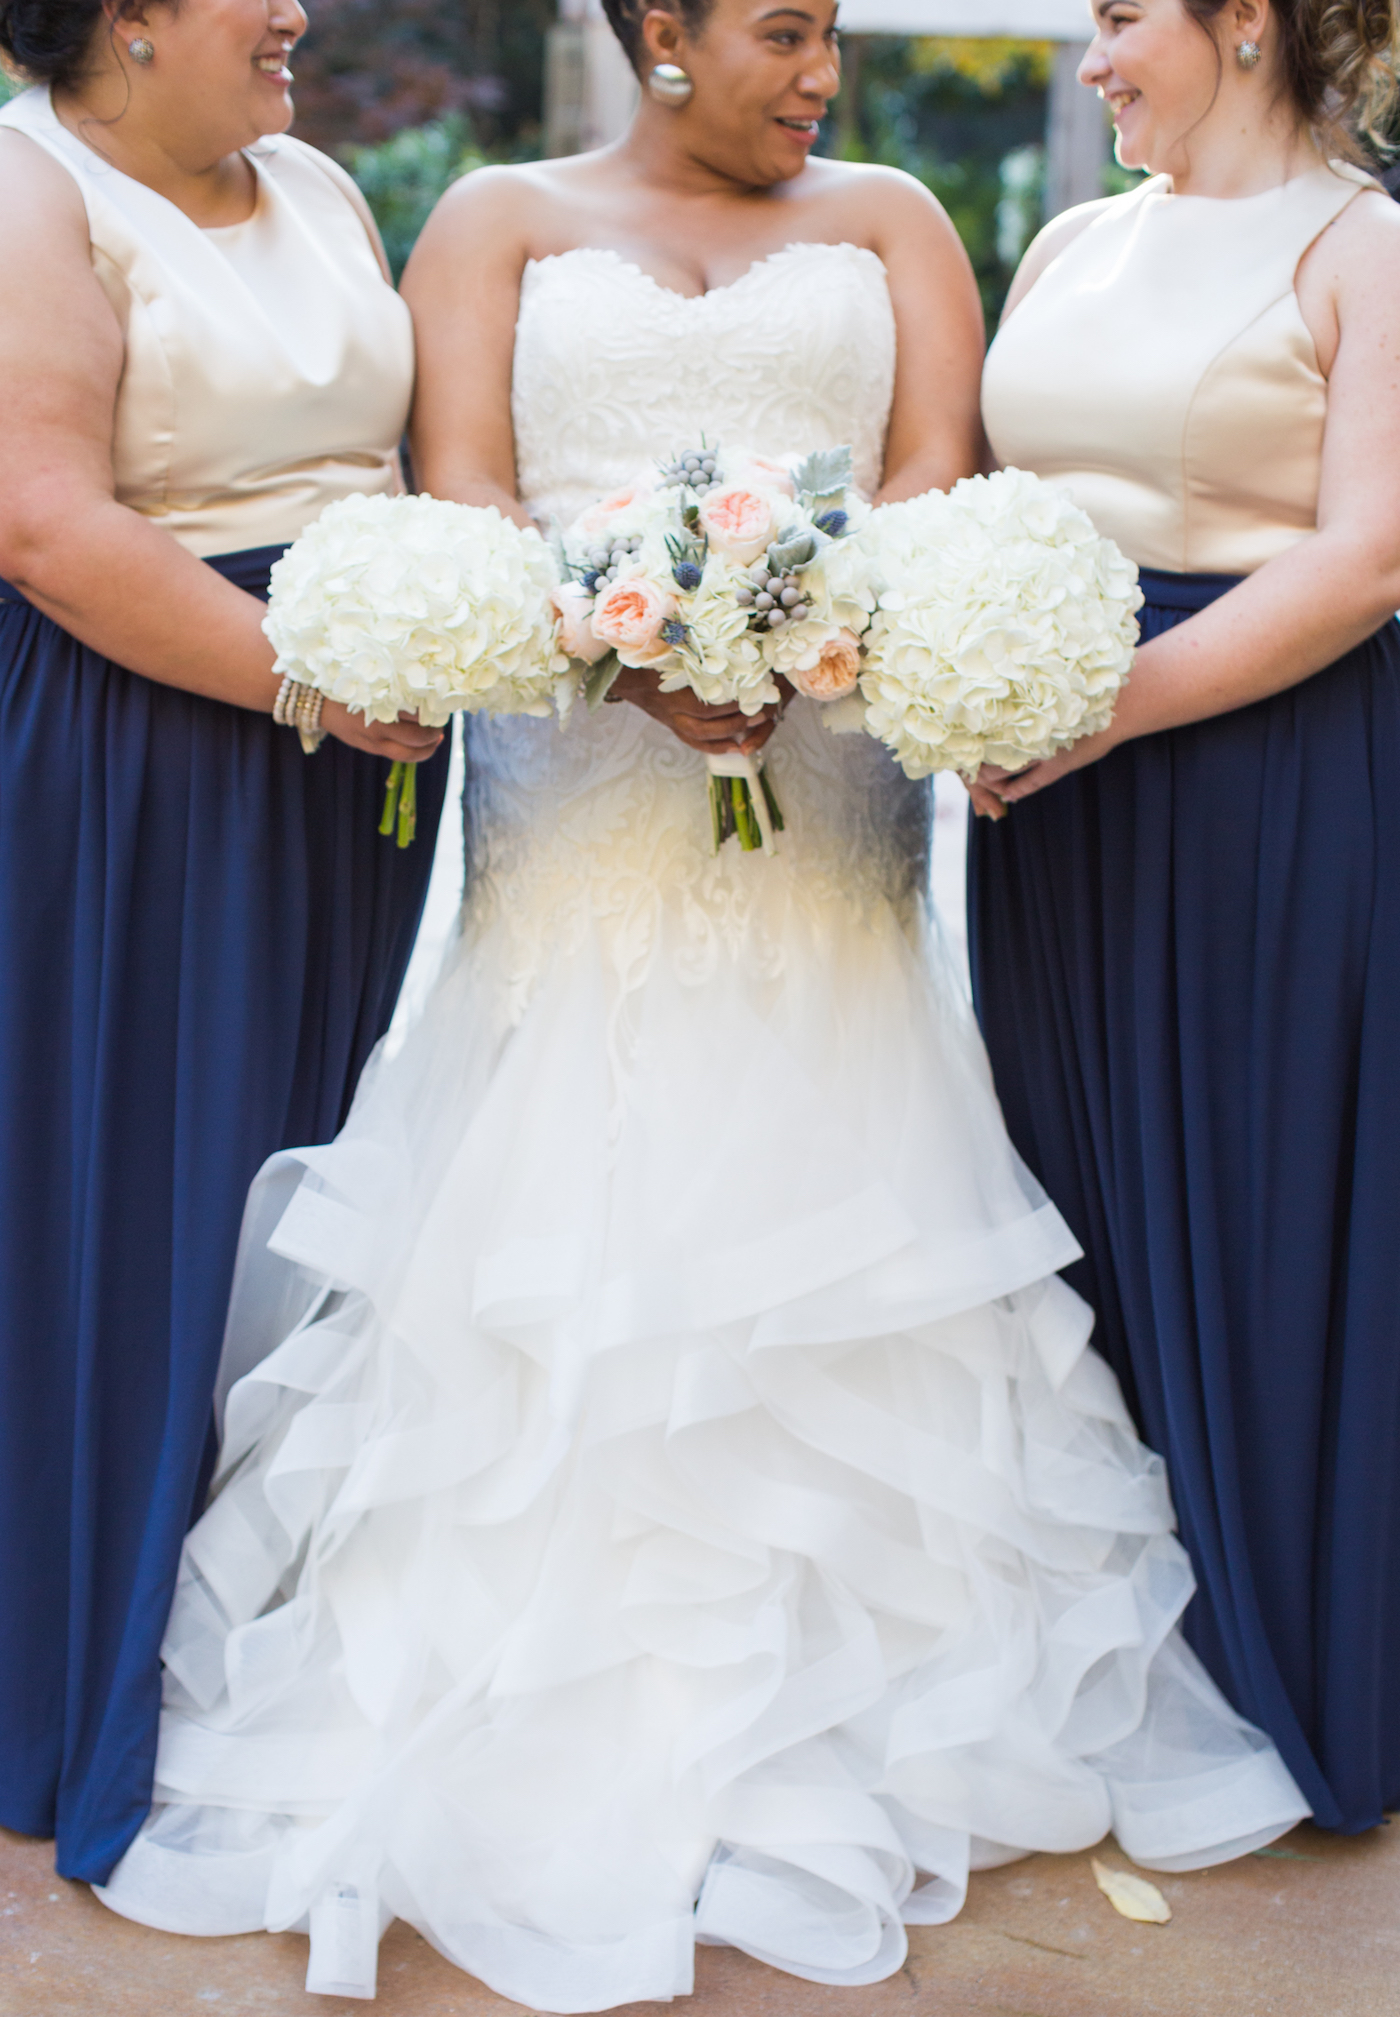 intimate-wedding-columbia-sc-jessica-hunt-photo-10